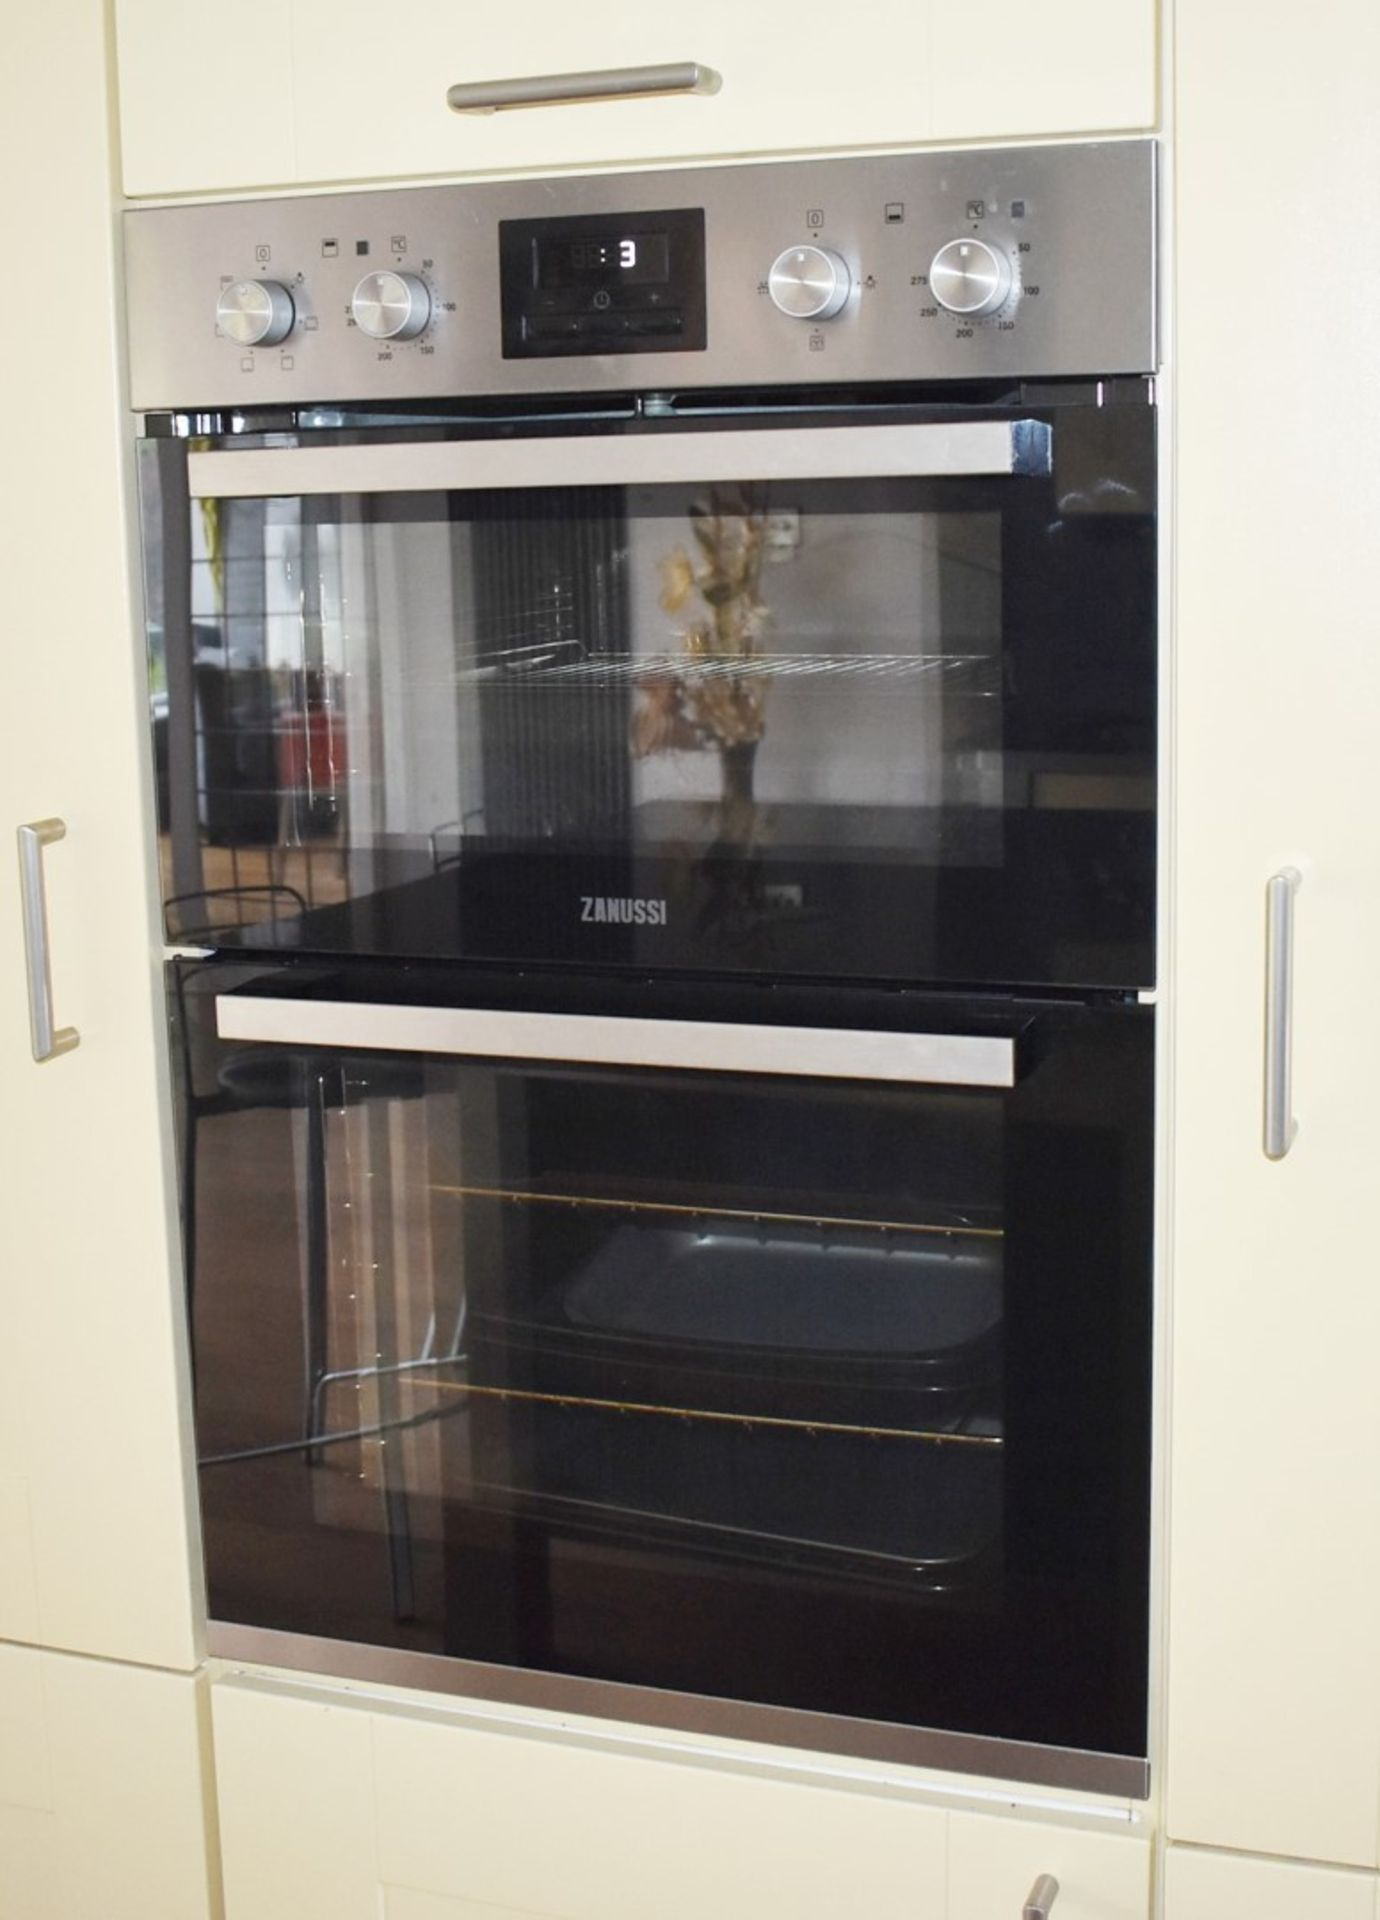 1 x SieMatic Contemporary Fitted Kitchen With Appliances - Features Shaker Style Doors, Central - Image 86 of 96